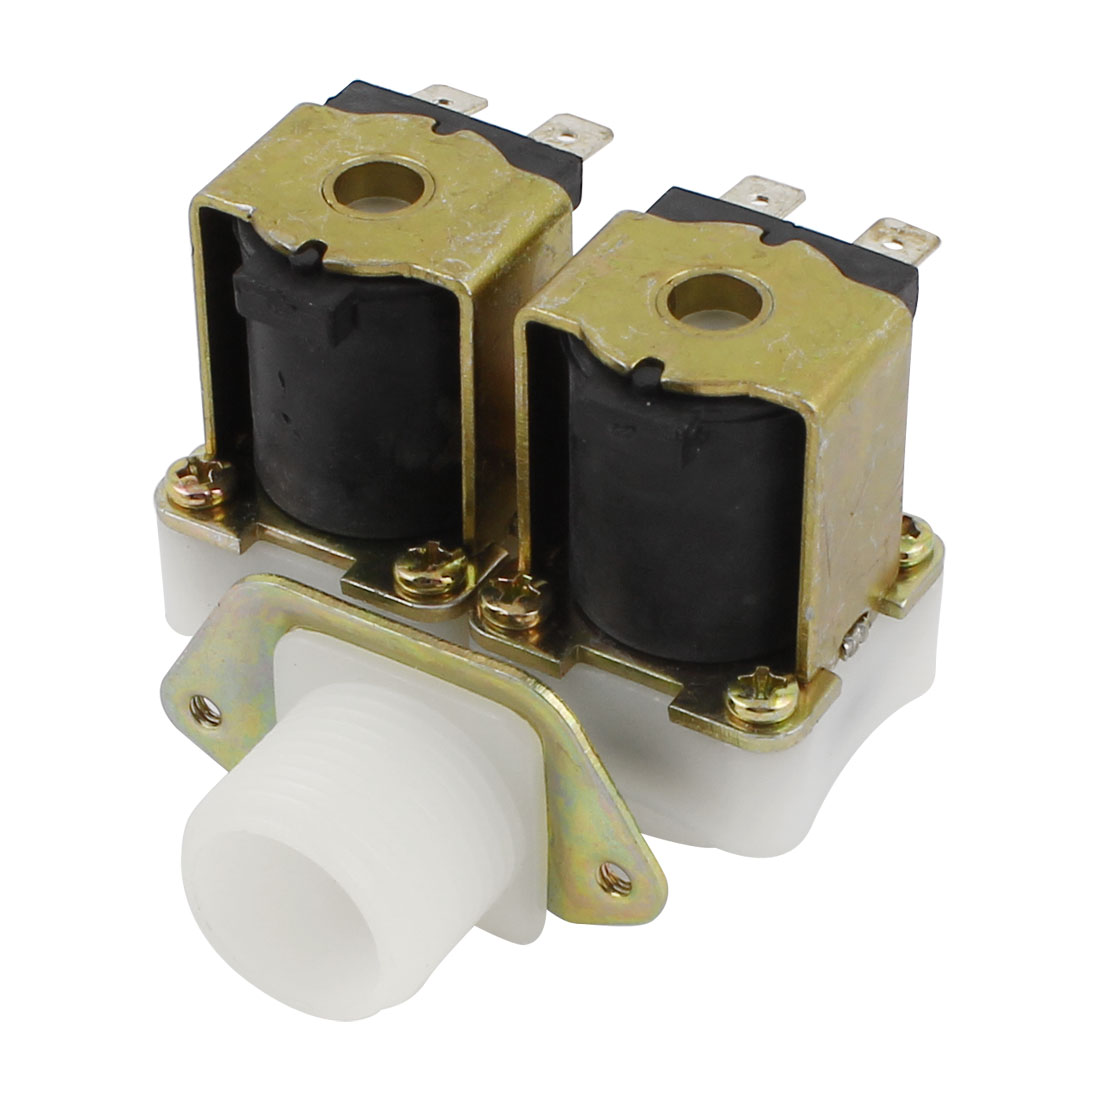 G3/4 1 Inlet 2 Outlet Water Solenoid Valve DC 12V NC for Washer Washing Machine